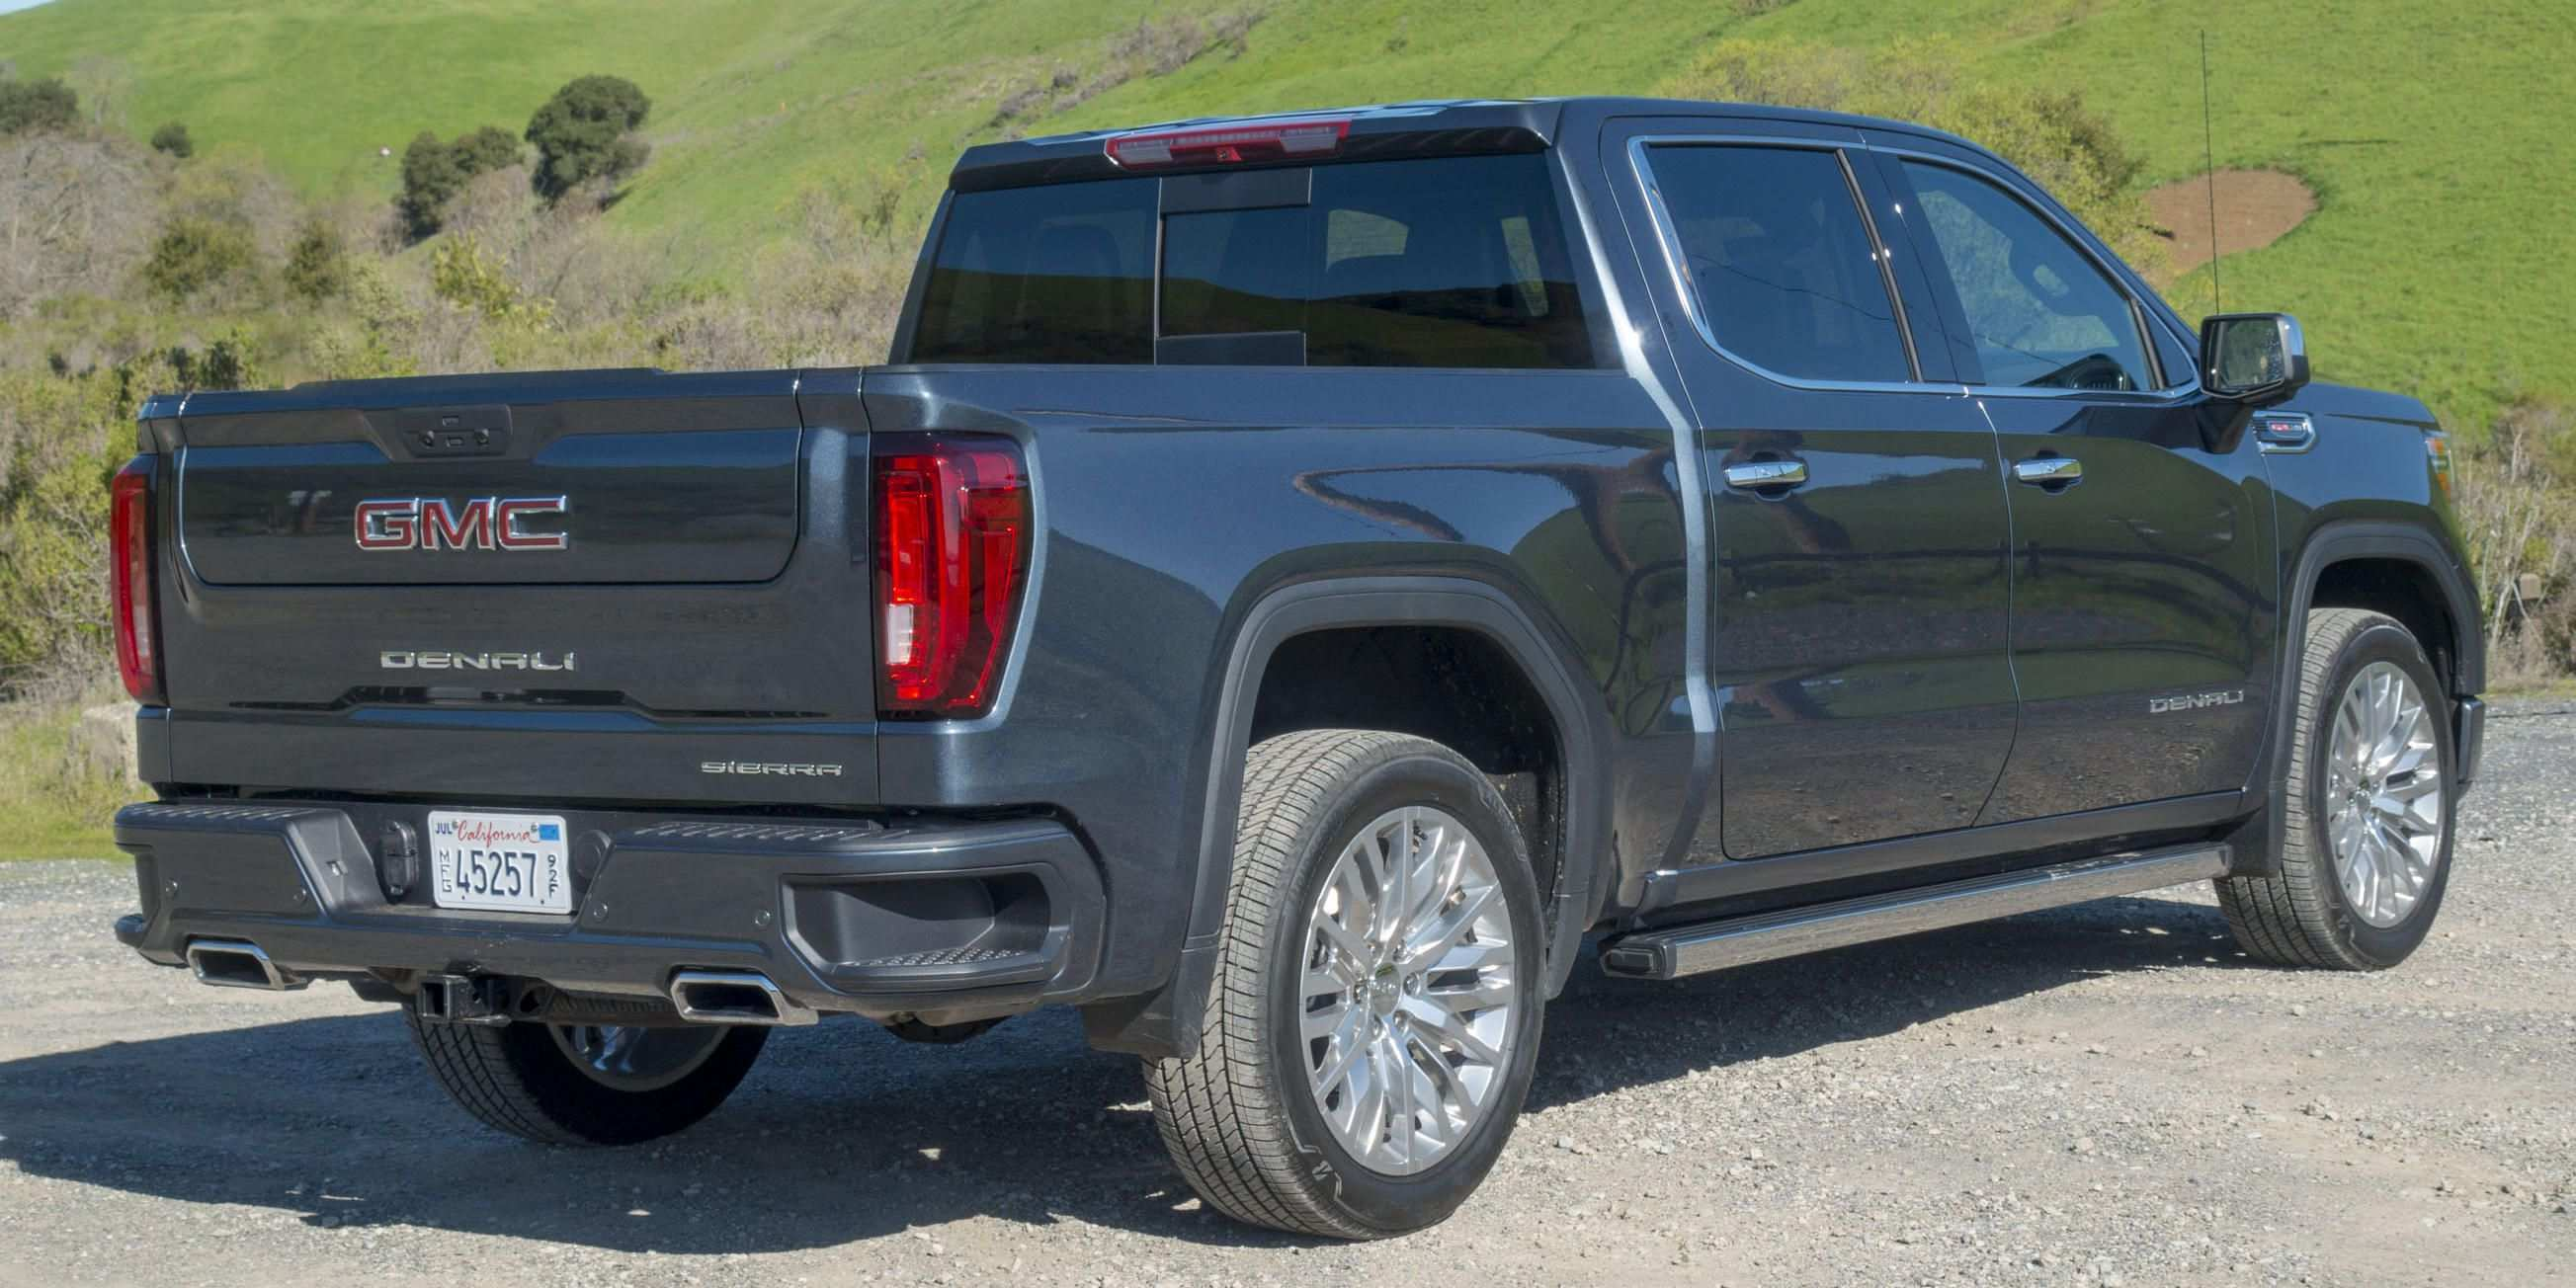 40 New 2019 Gmc Pics Specs And Review